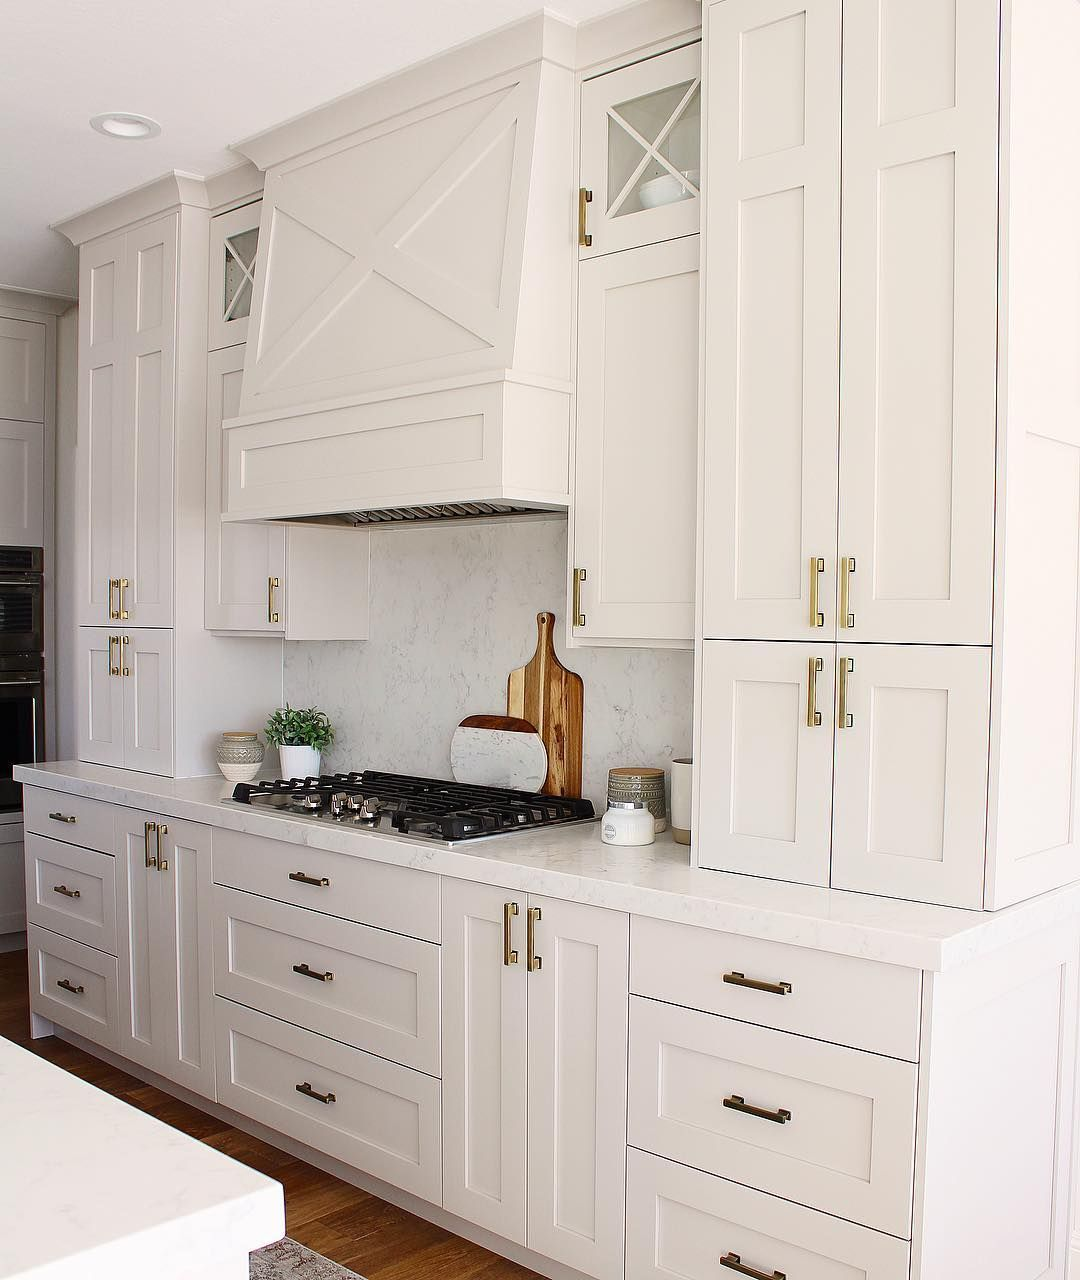 The Kitchen In The Alloraproject Is Another Kitchen Where I Used A Warm Neutral Instead Of White Greige Kitchen Kitchen Inspirations Kitchen Cabinet Colors